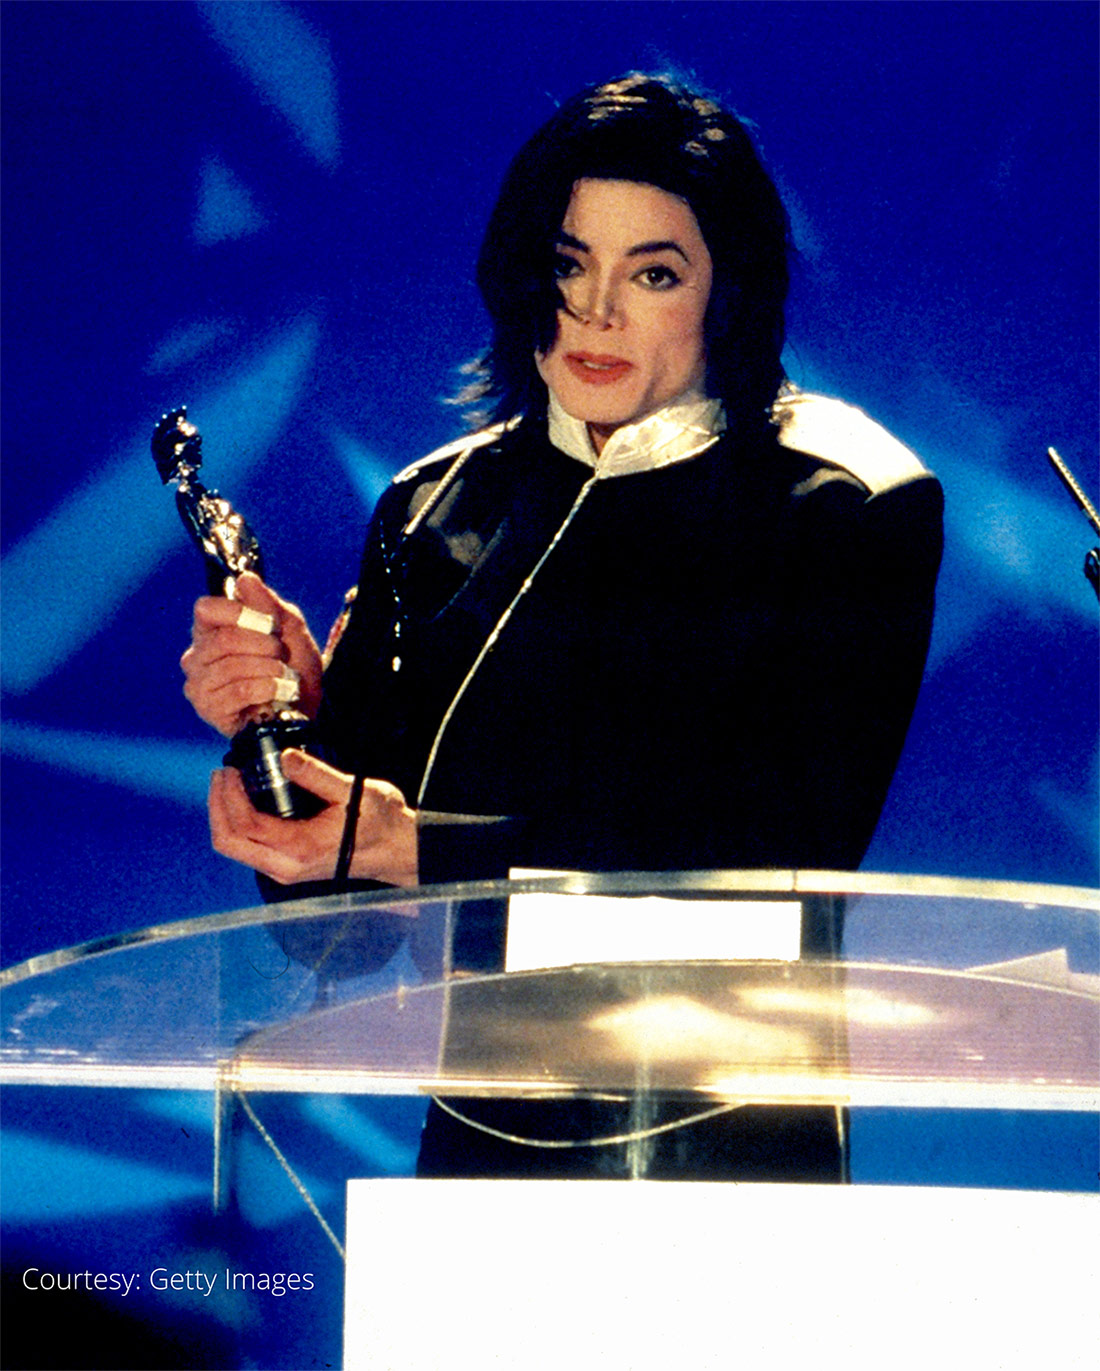 Michael Jackson accepts award at BRIT Awards February 20, 1996